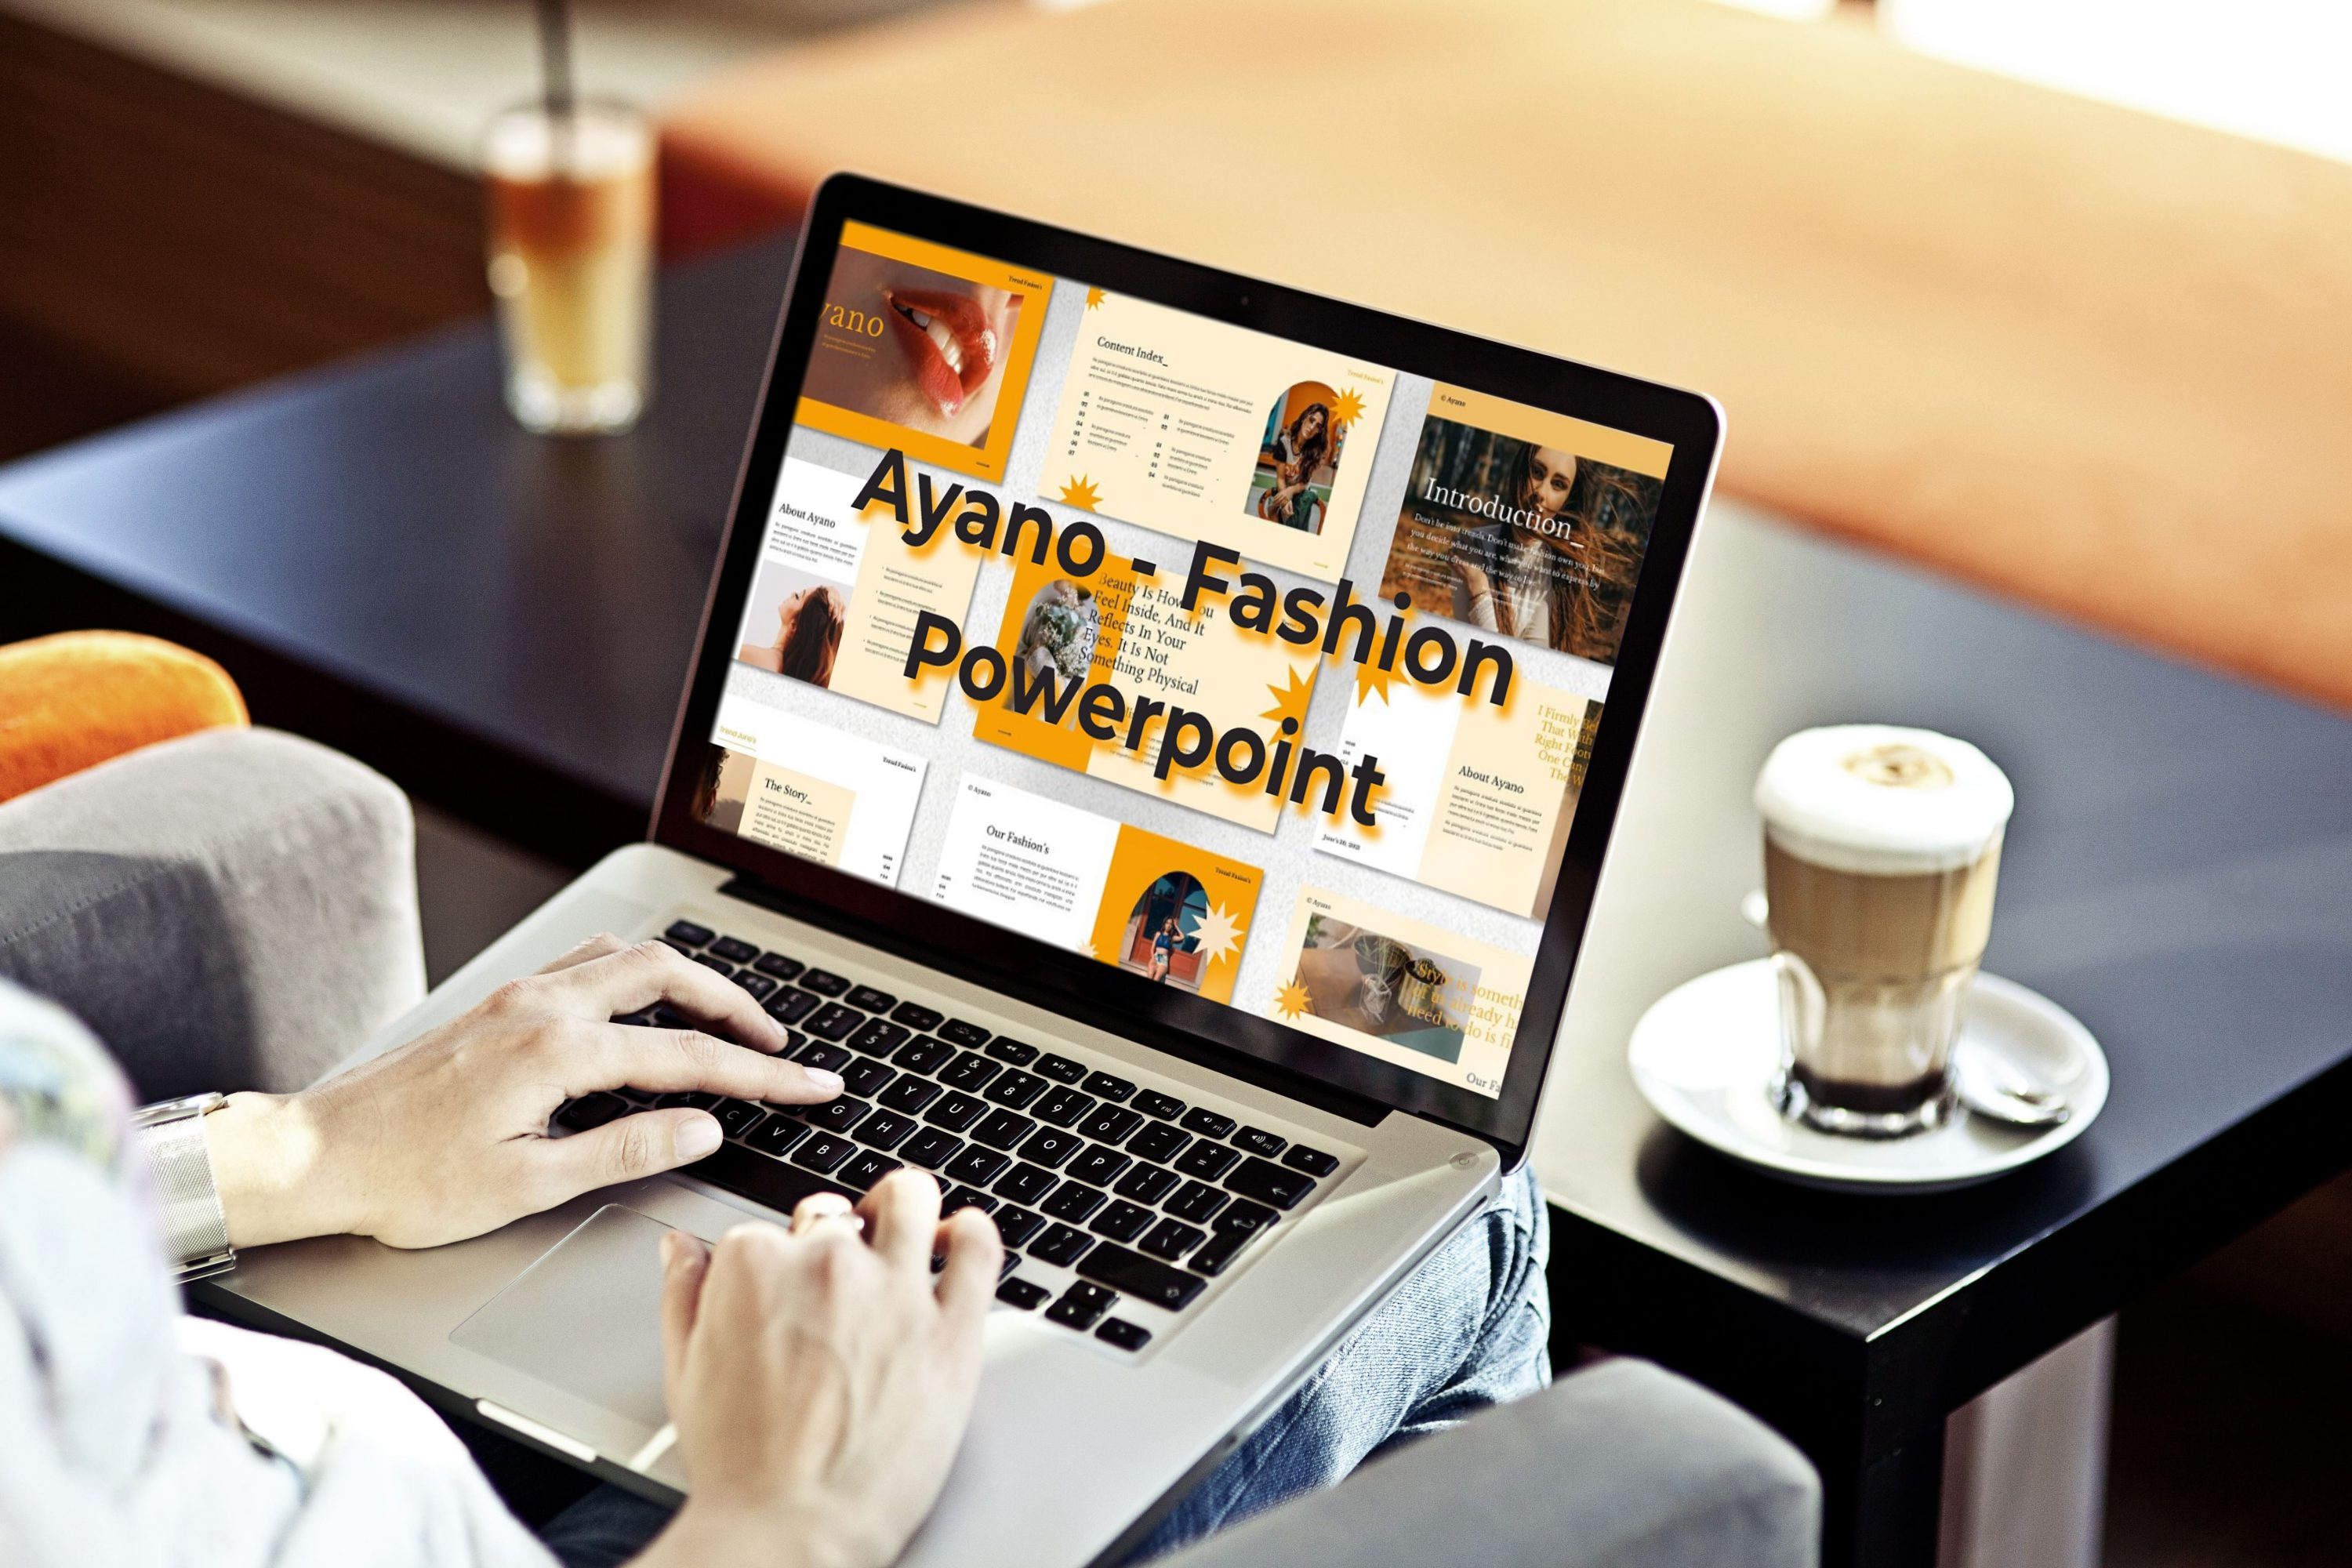 Laptop option of the Ayano - Fashion Powerpoint.